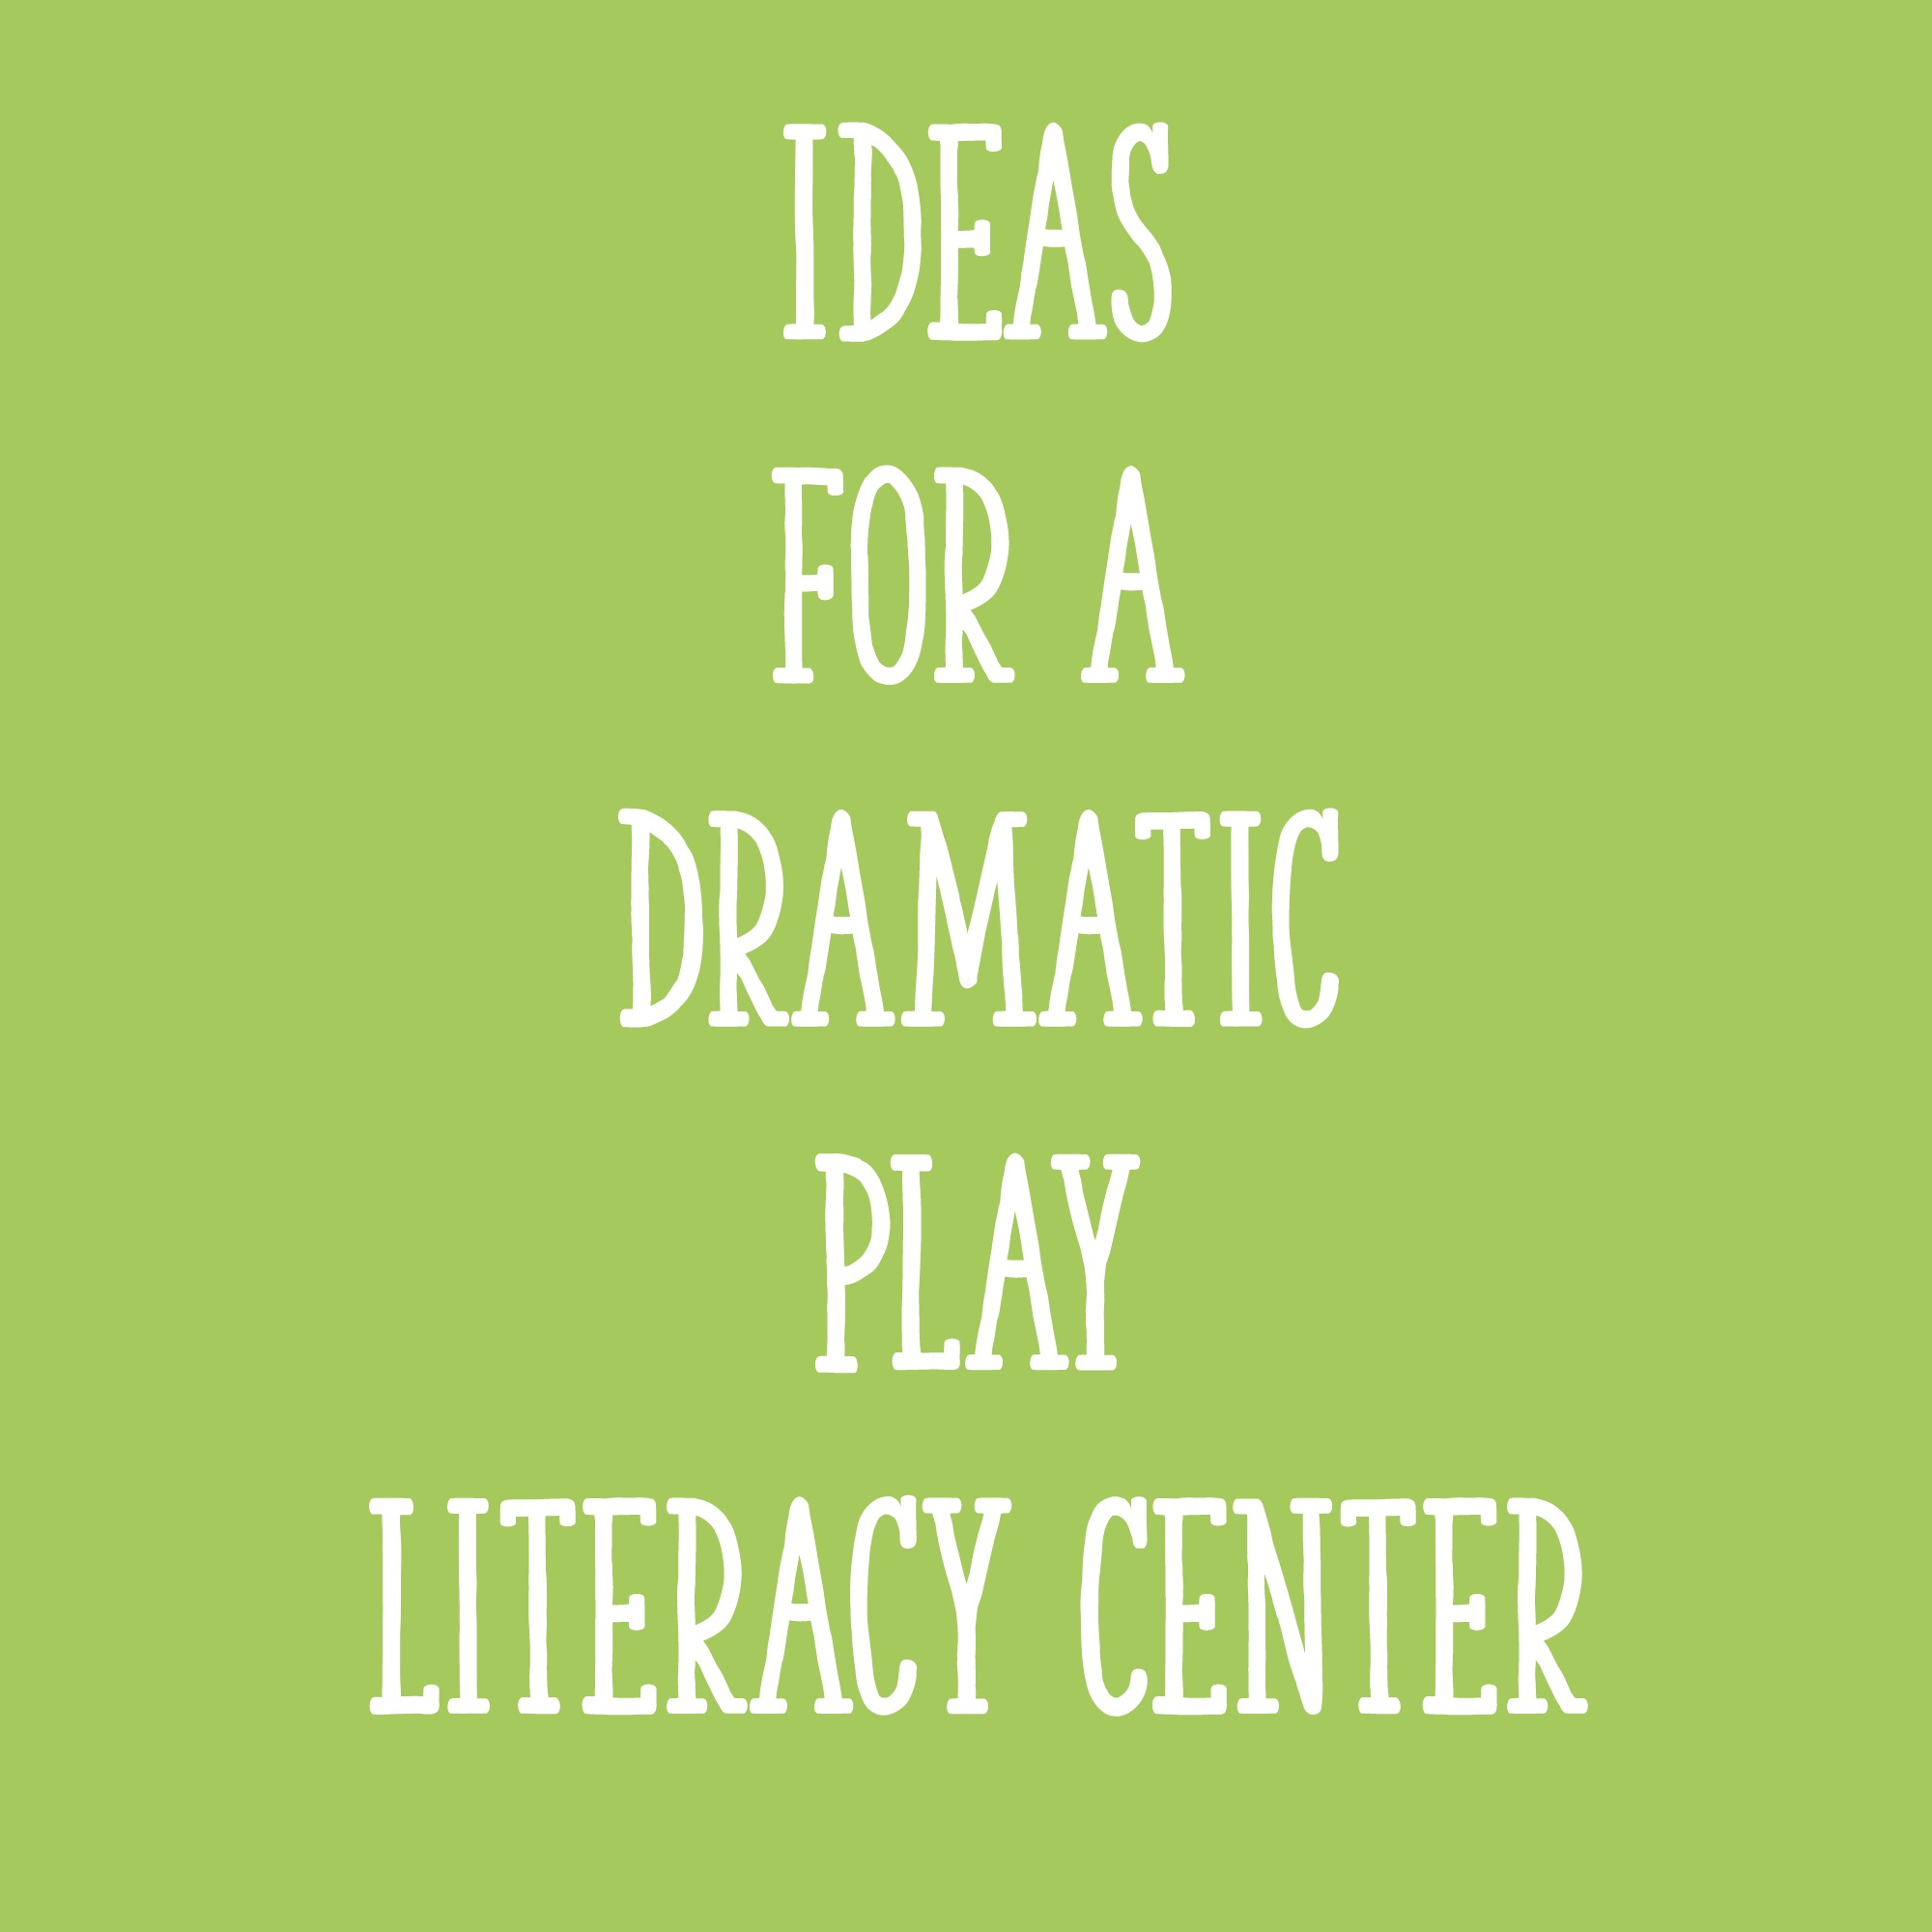 play and learning centers essay Challenges faced by teachers of early childhood education in the last decade, the boundaries of the profession  teaching and learning enter-prise.